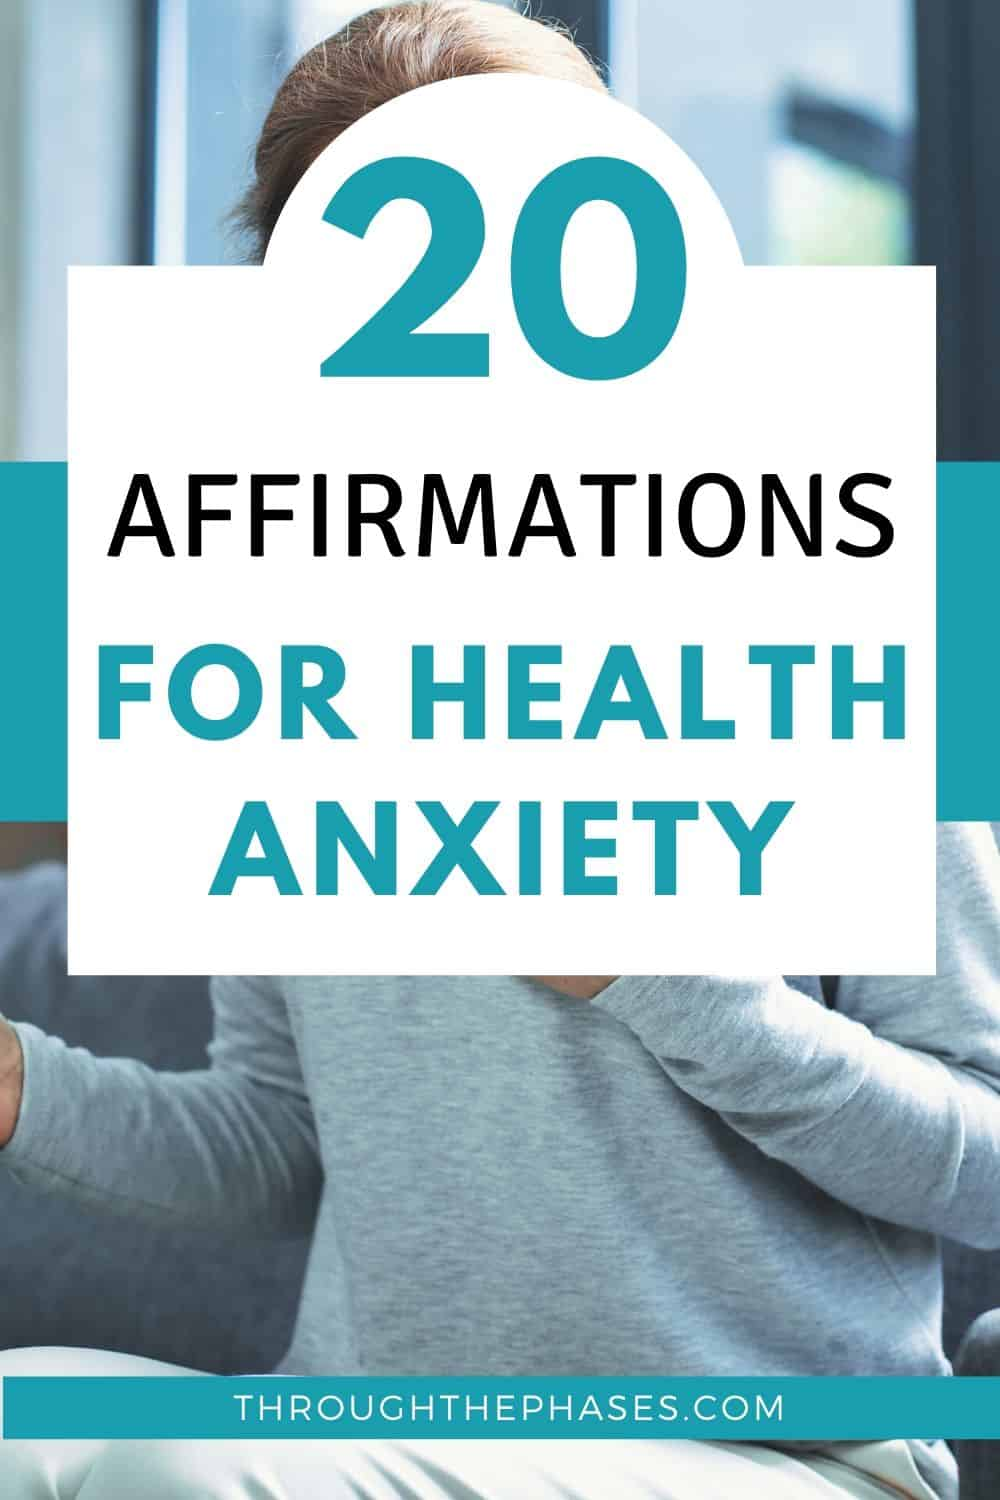 20 affirmations for health anxiety